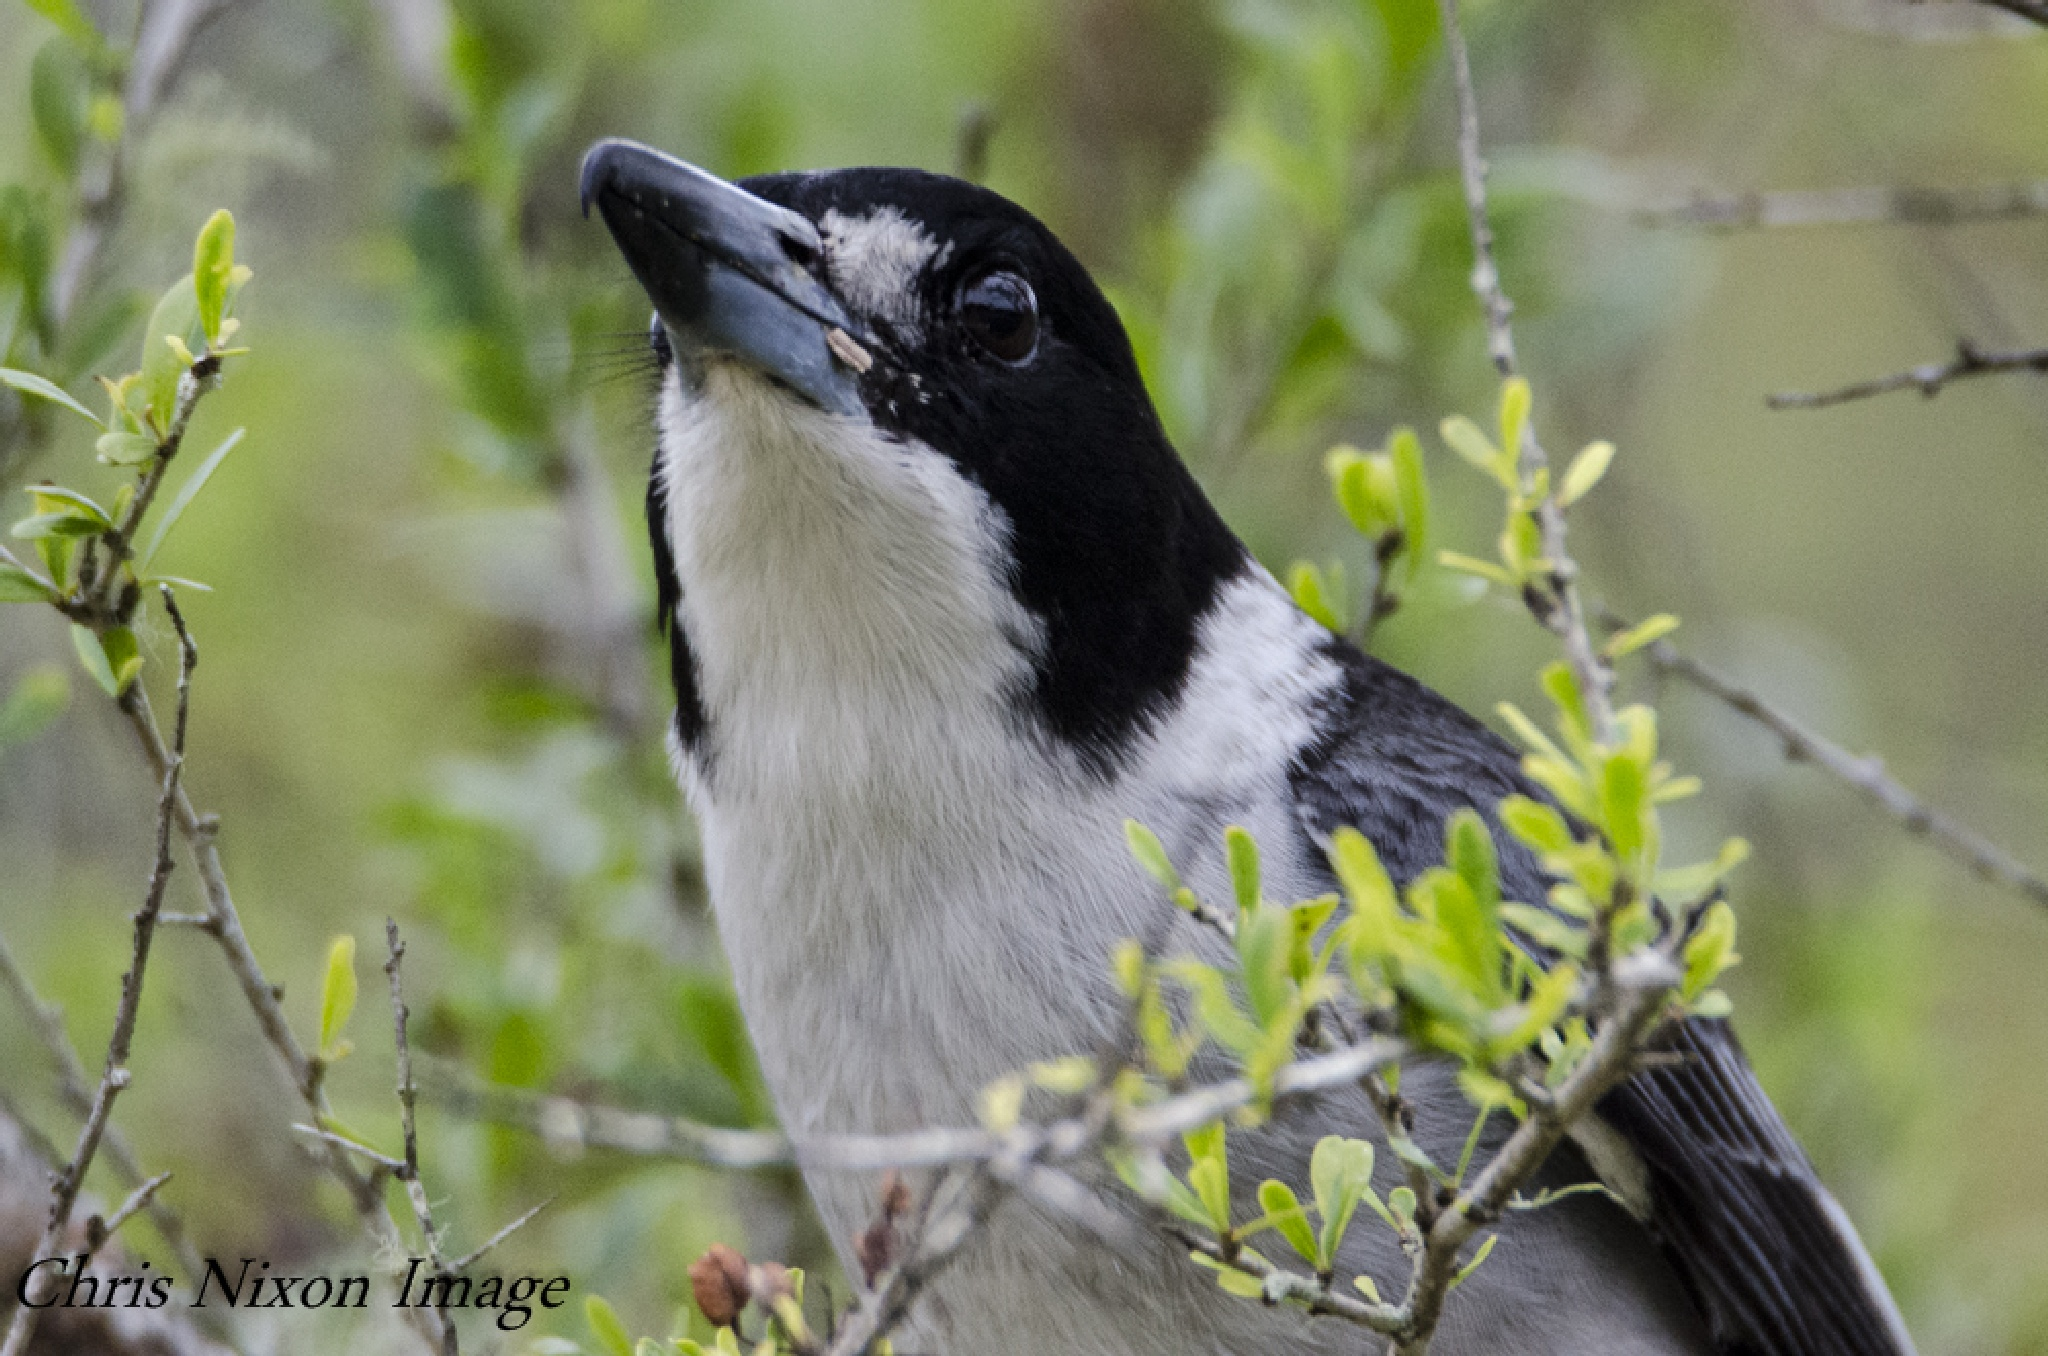 Pied Butcher bird by chrisgnixon